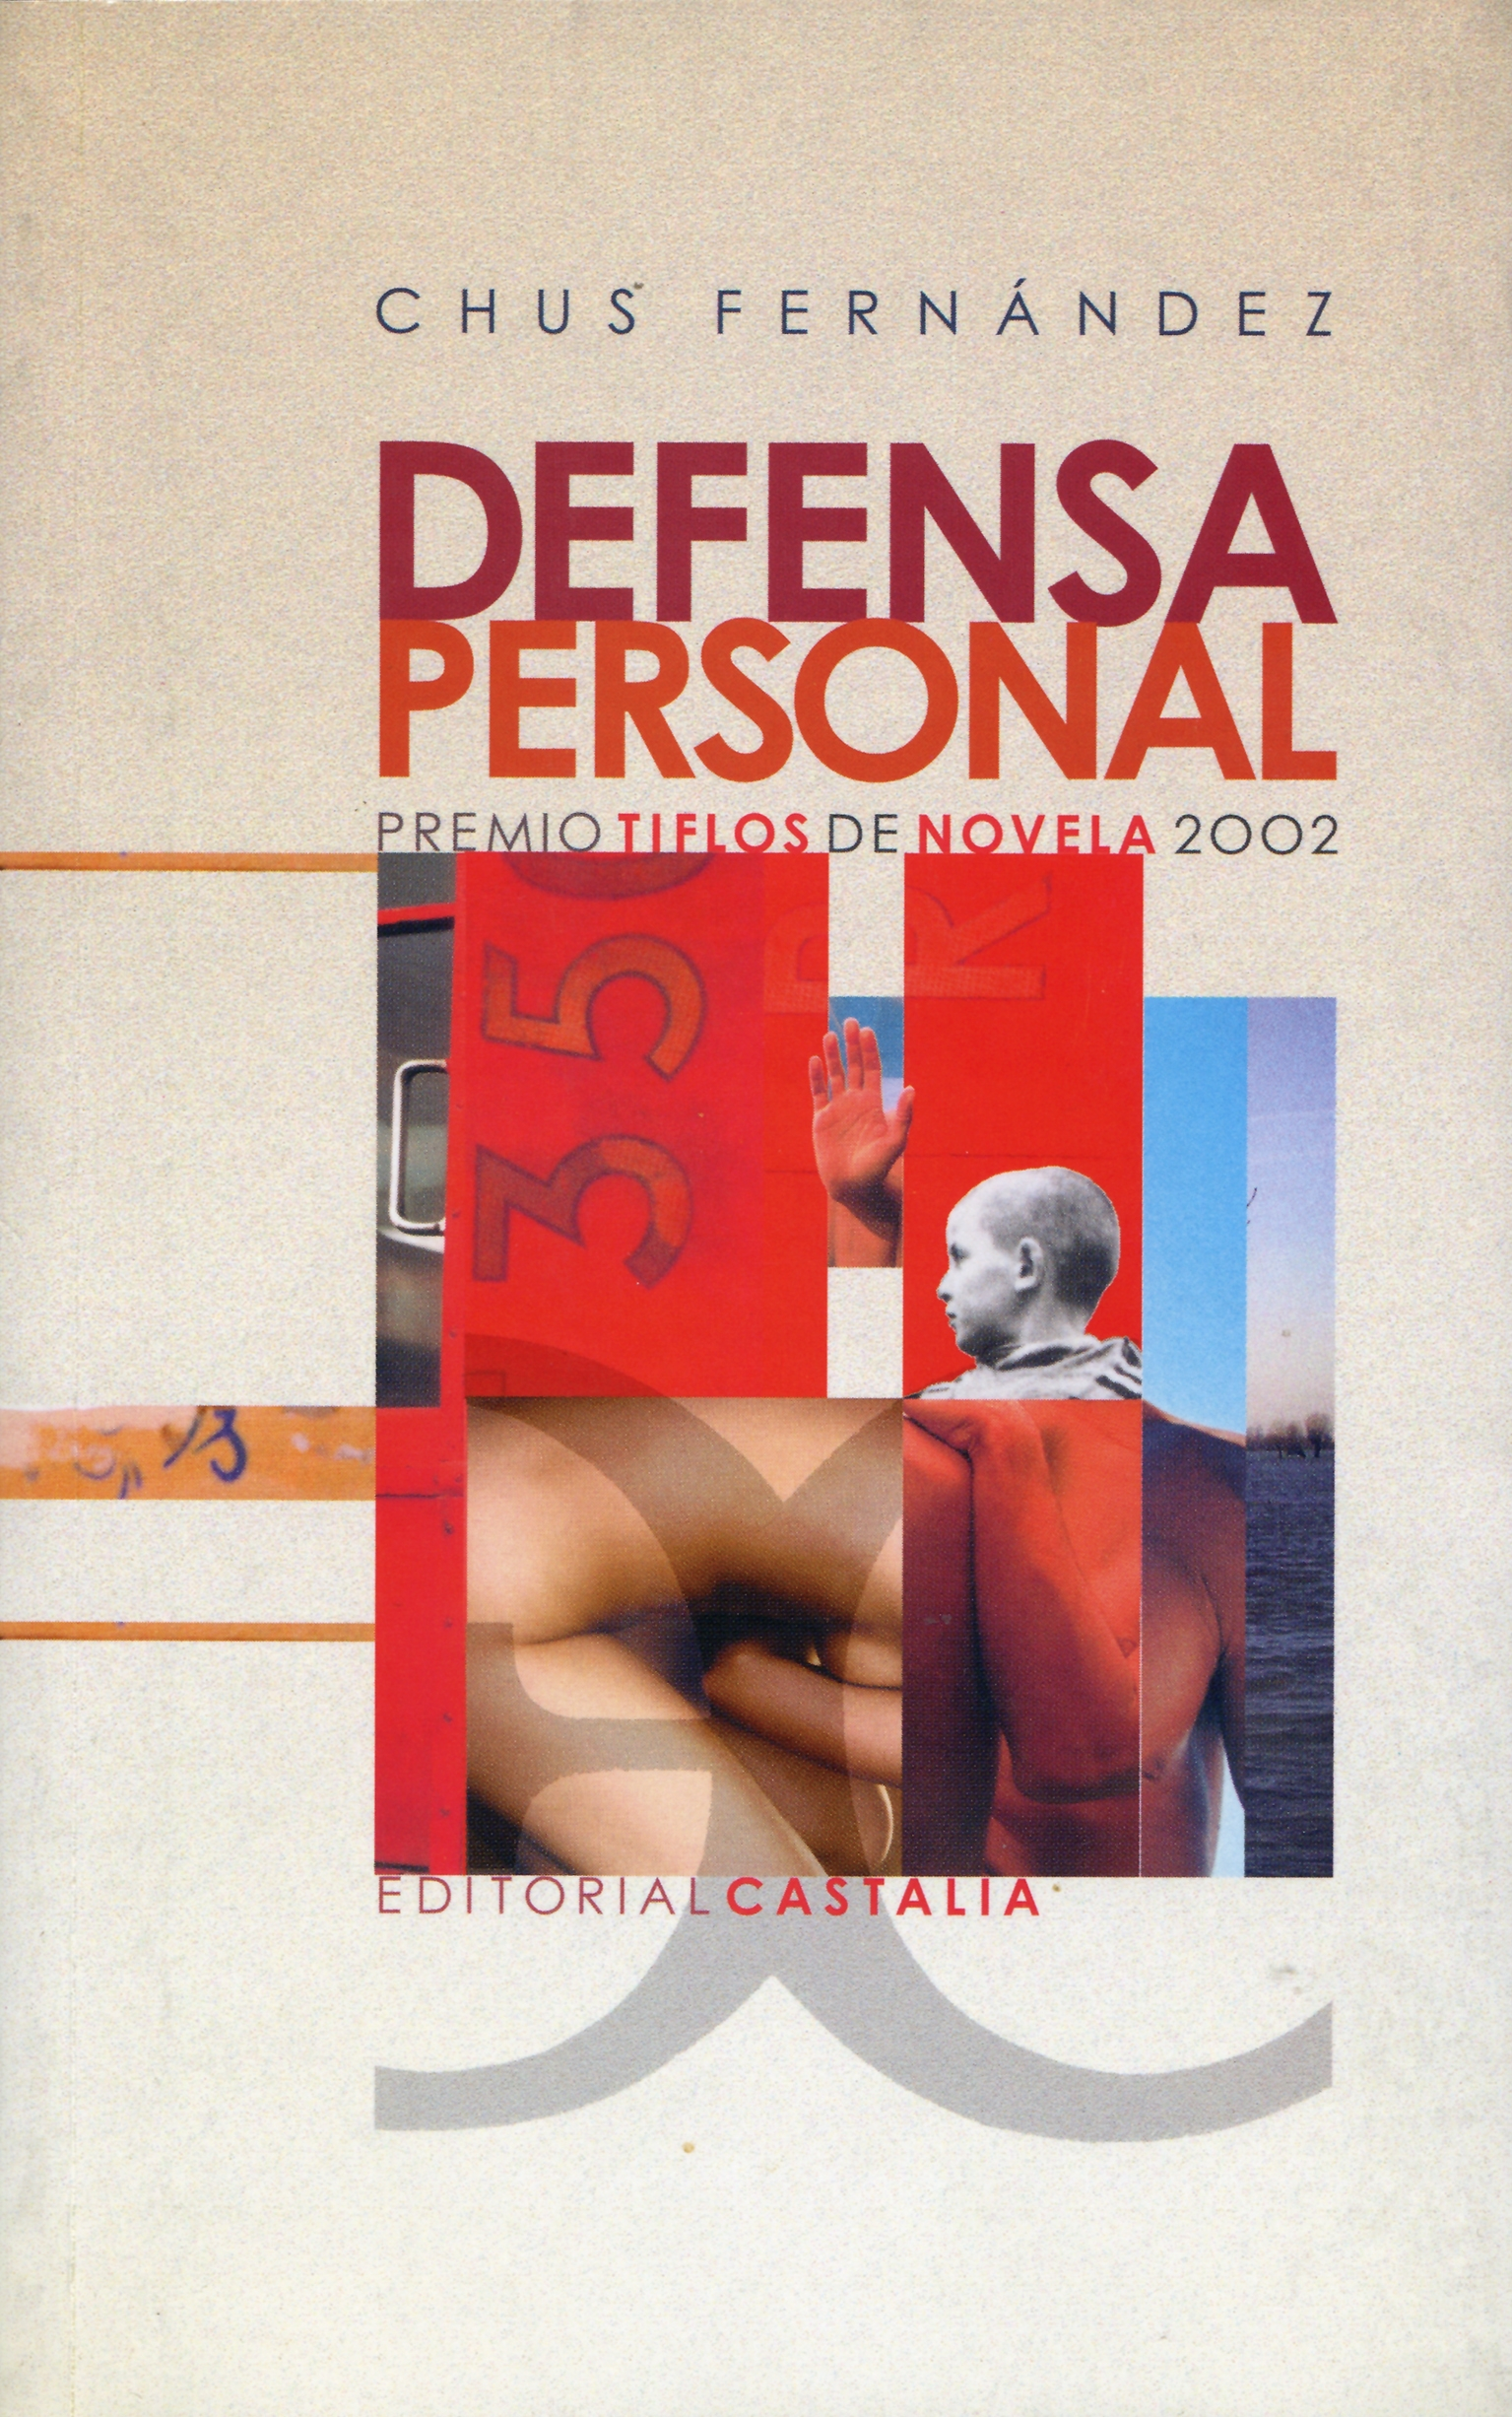 Defensa personal